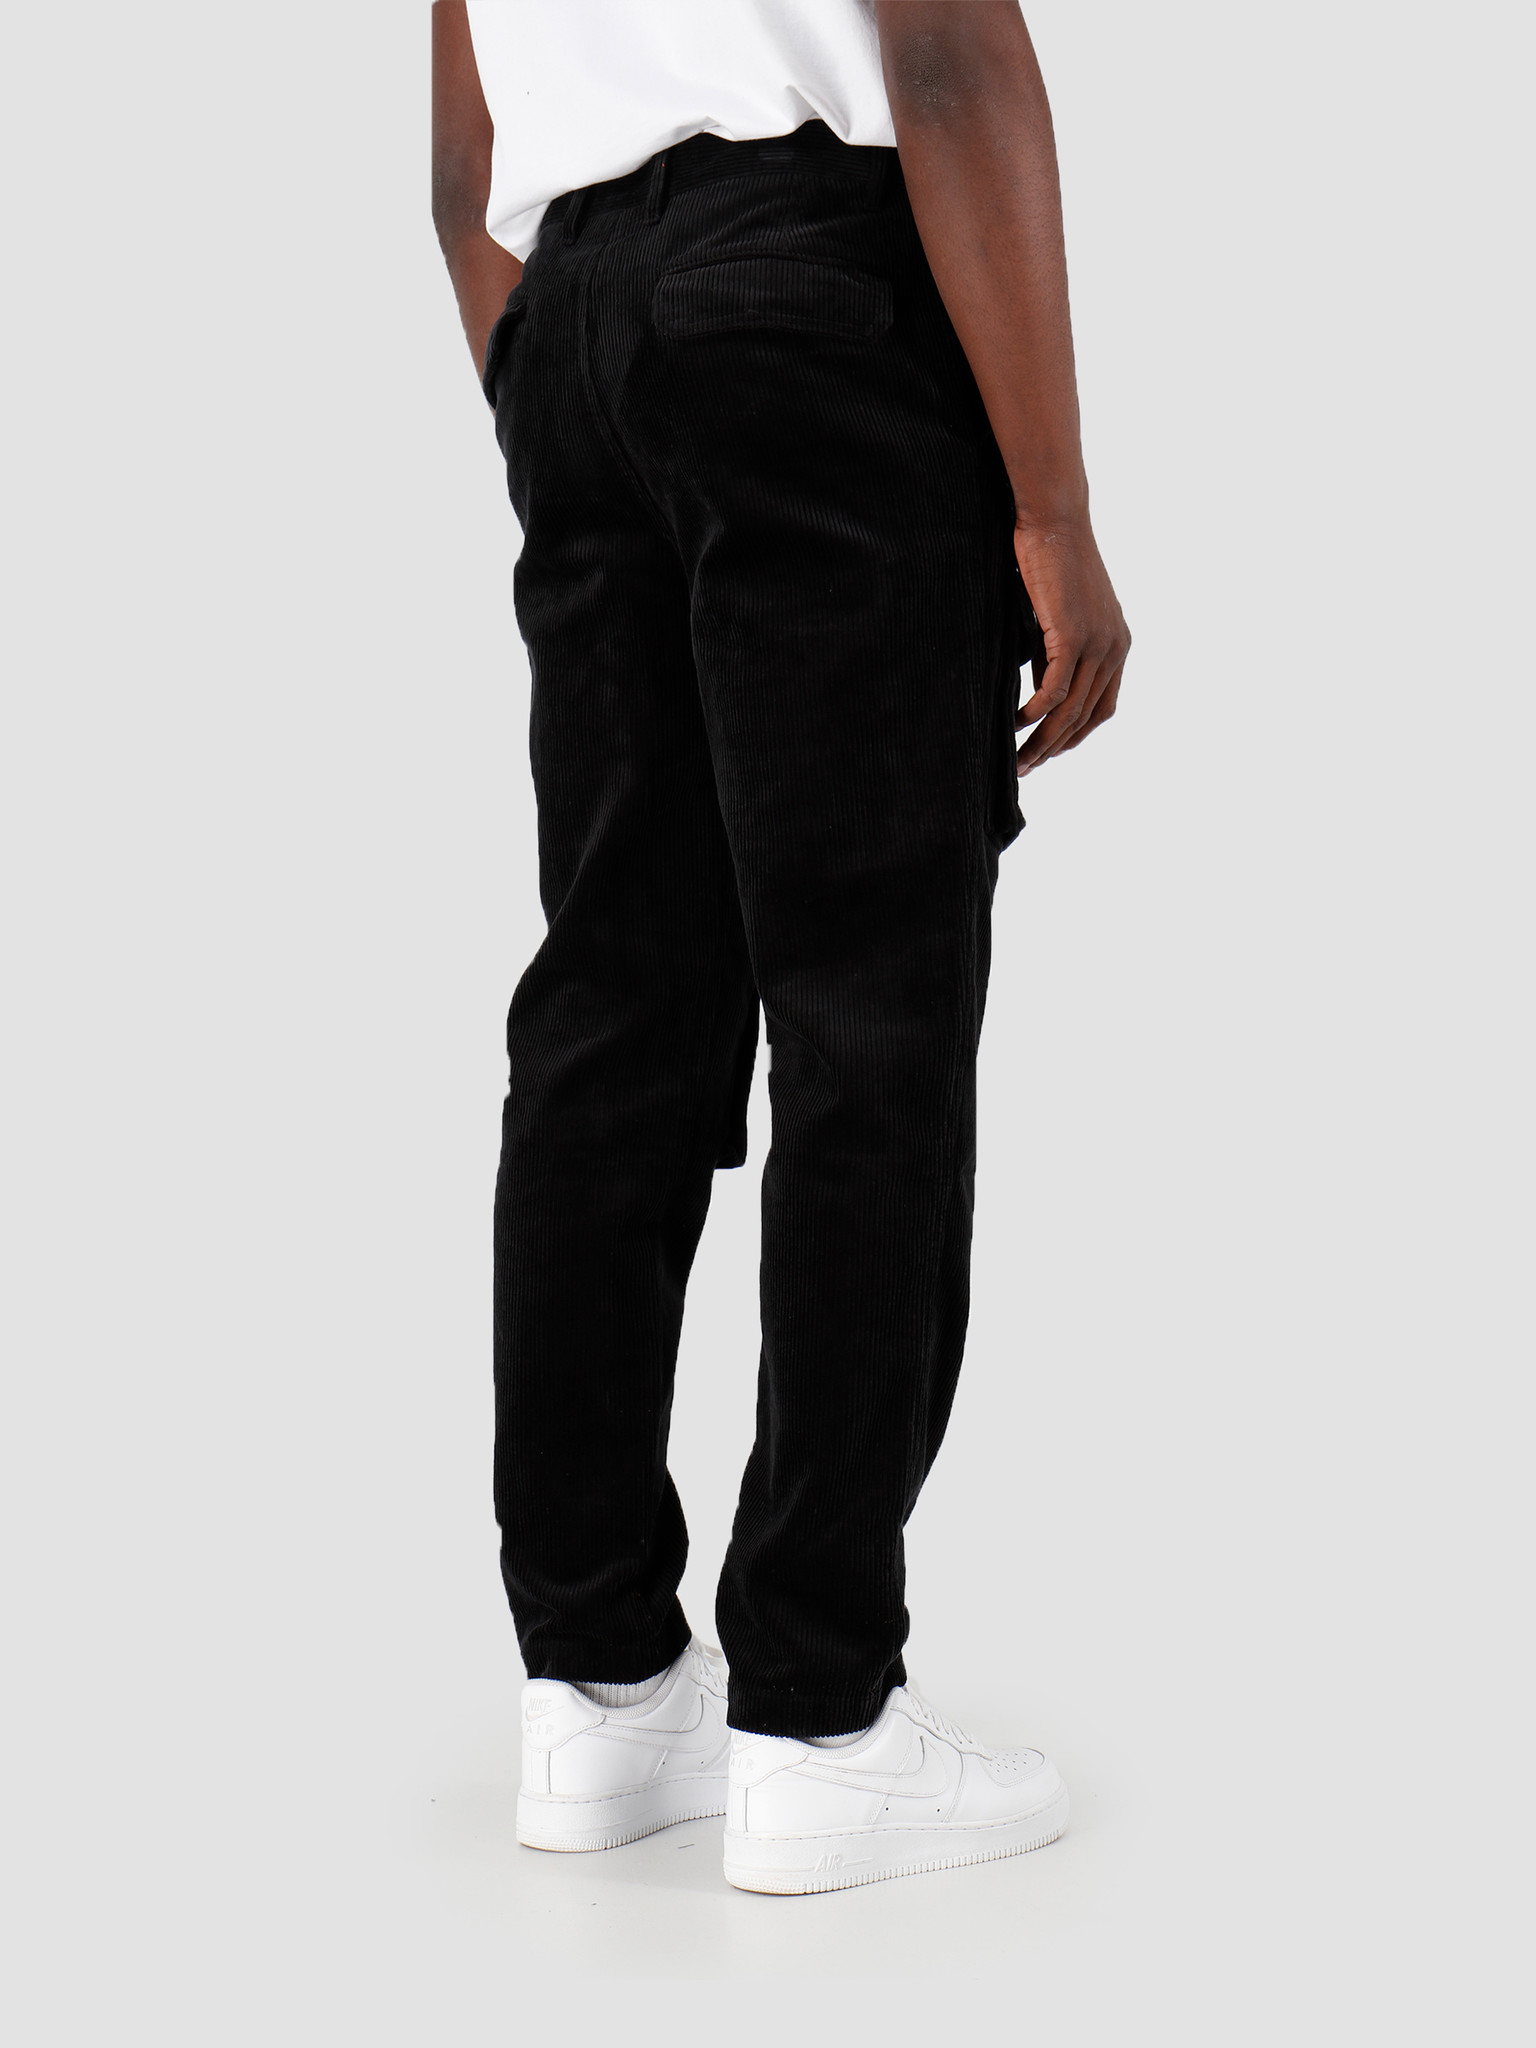 Daily Paper Daily Paper Cargo Pants Corduroy Black 19H1PA0204